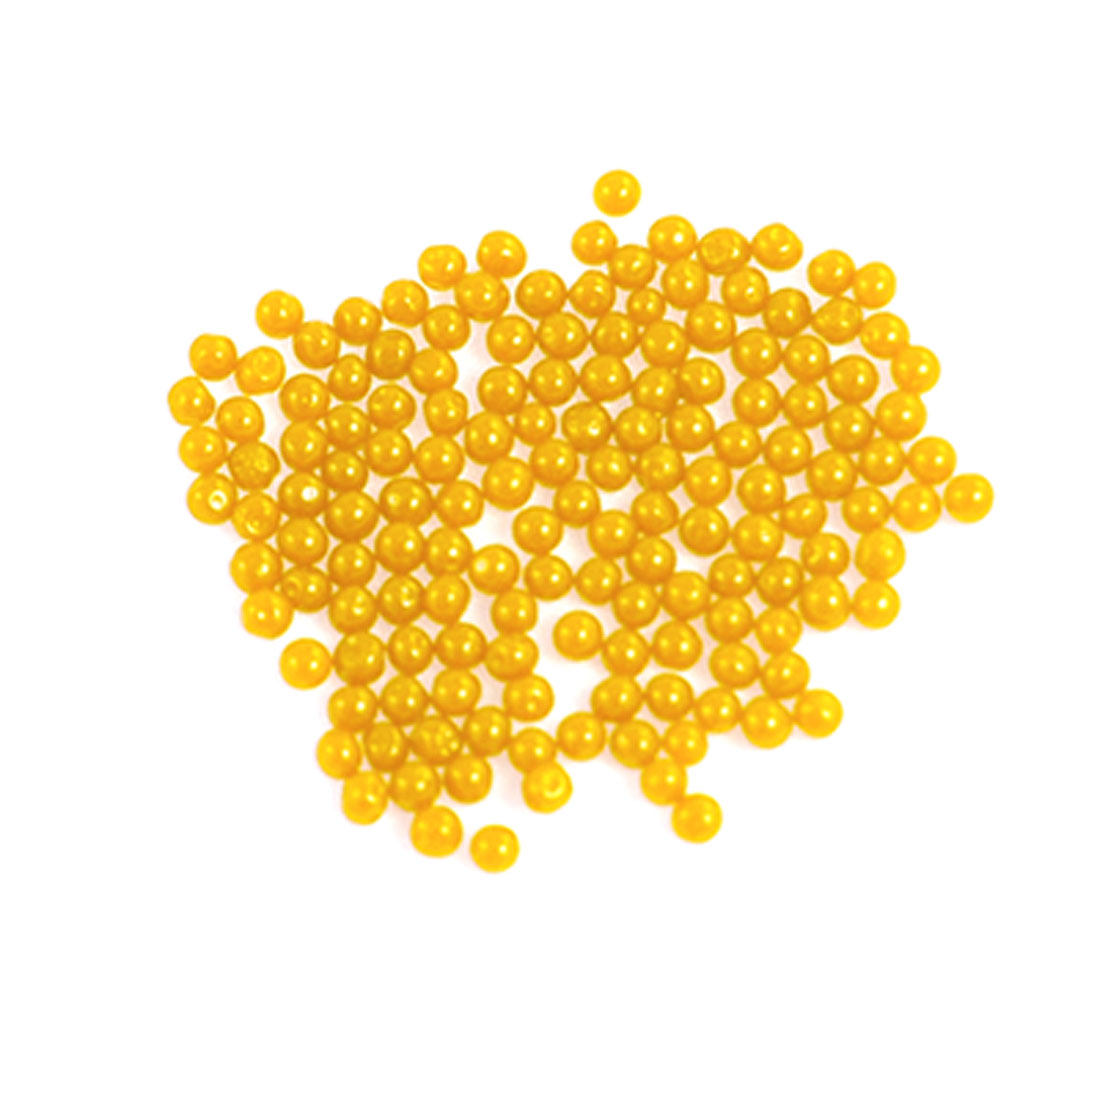 Flower Plant Magical Crystal Mud Soil Water Yellow Gel Beads Decor 5 Bags